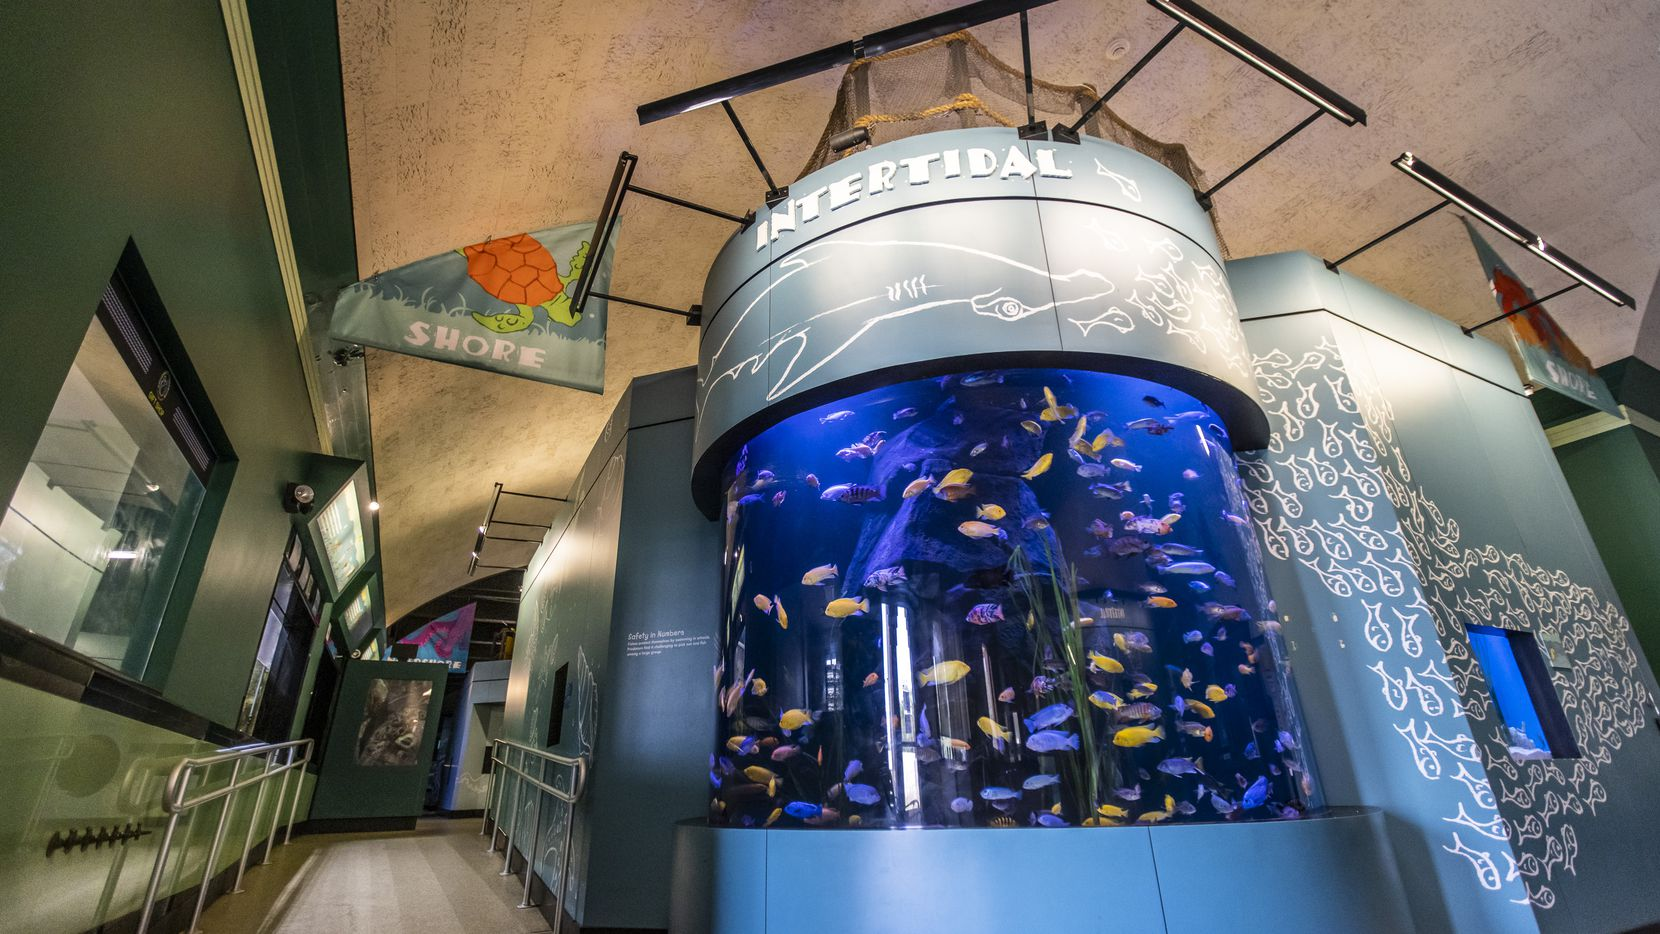 Rift cichlids swim Wednesday in the Intertidal exhibit just inside the entrance to the Children's Aquarium at Fair Park in Dallas. A City Council vote Wednesday could be the first step in finding a new operator for the facility, which has been closed for 15 months.